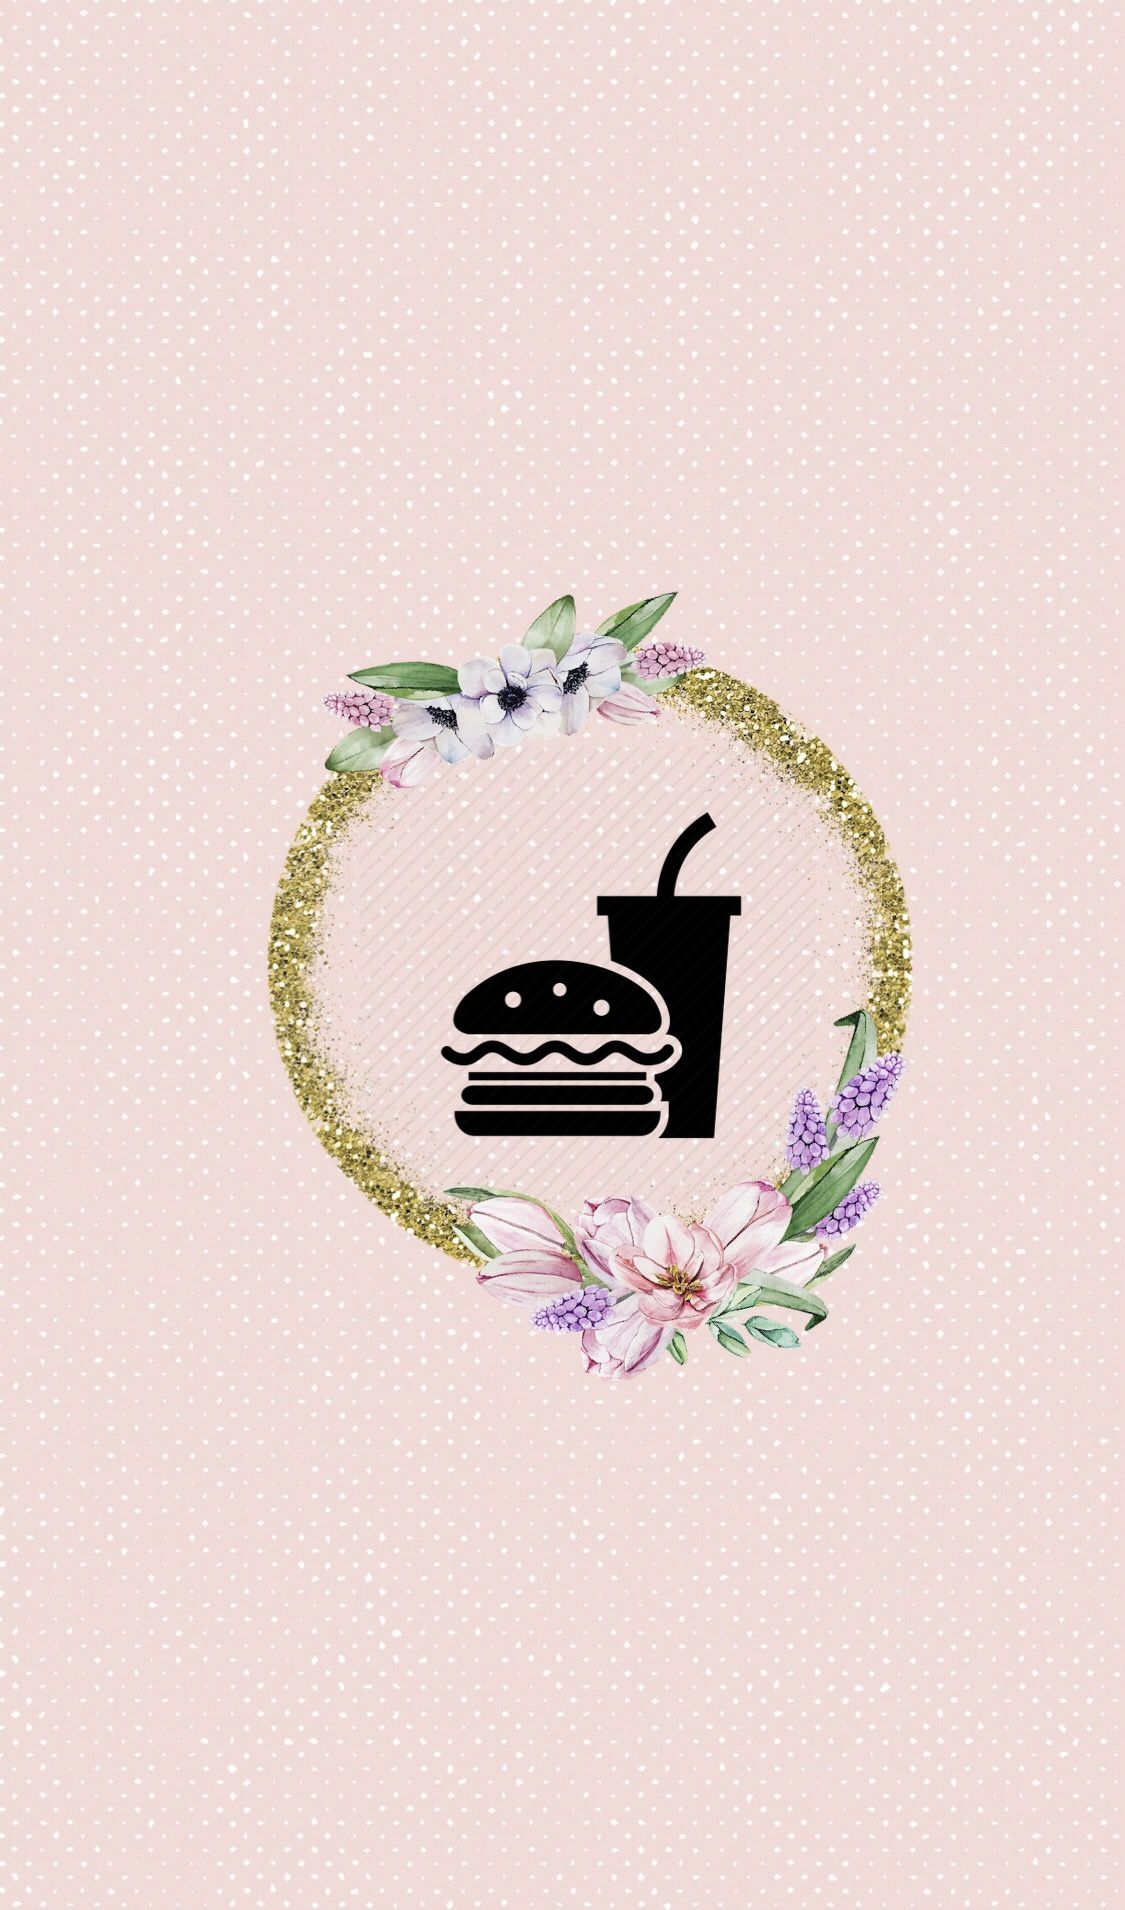 Junk Food Instagram Highlight Icons Cute Wallpapers Instagram Story